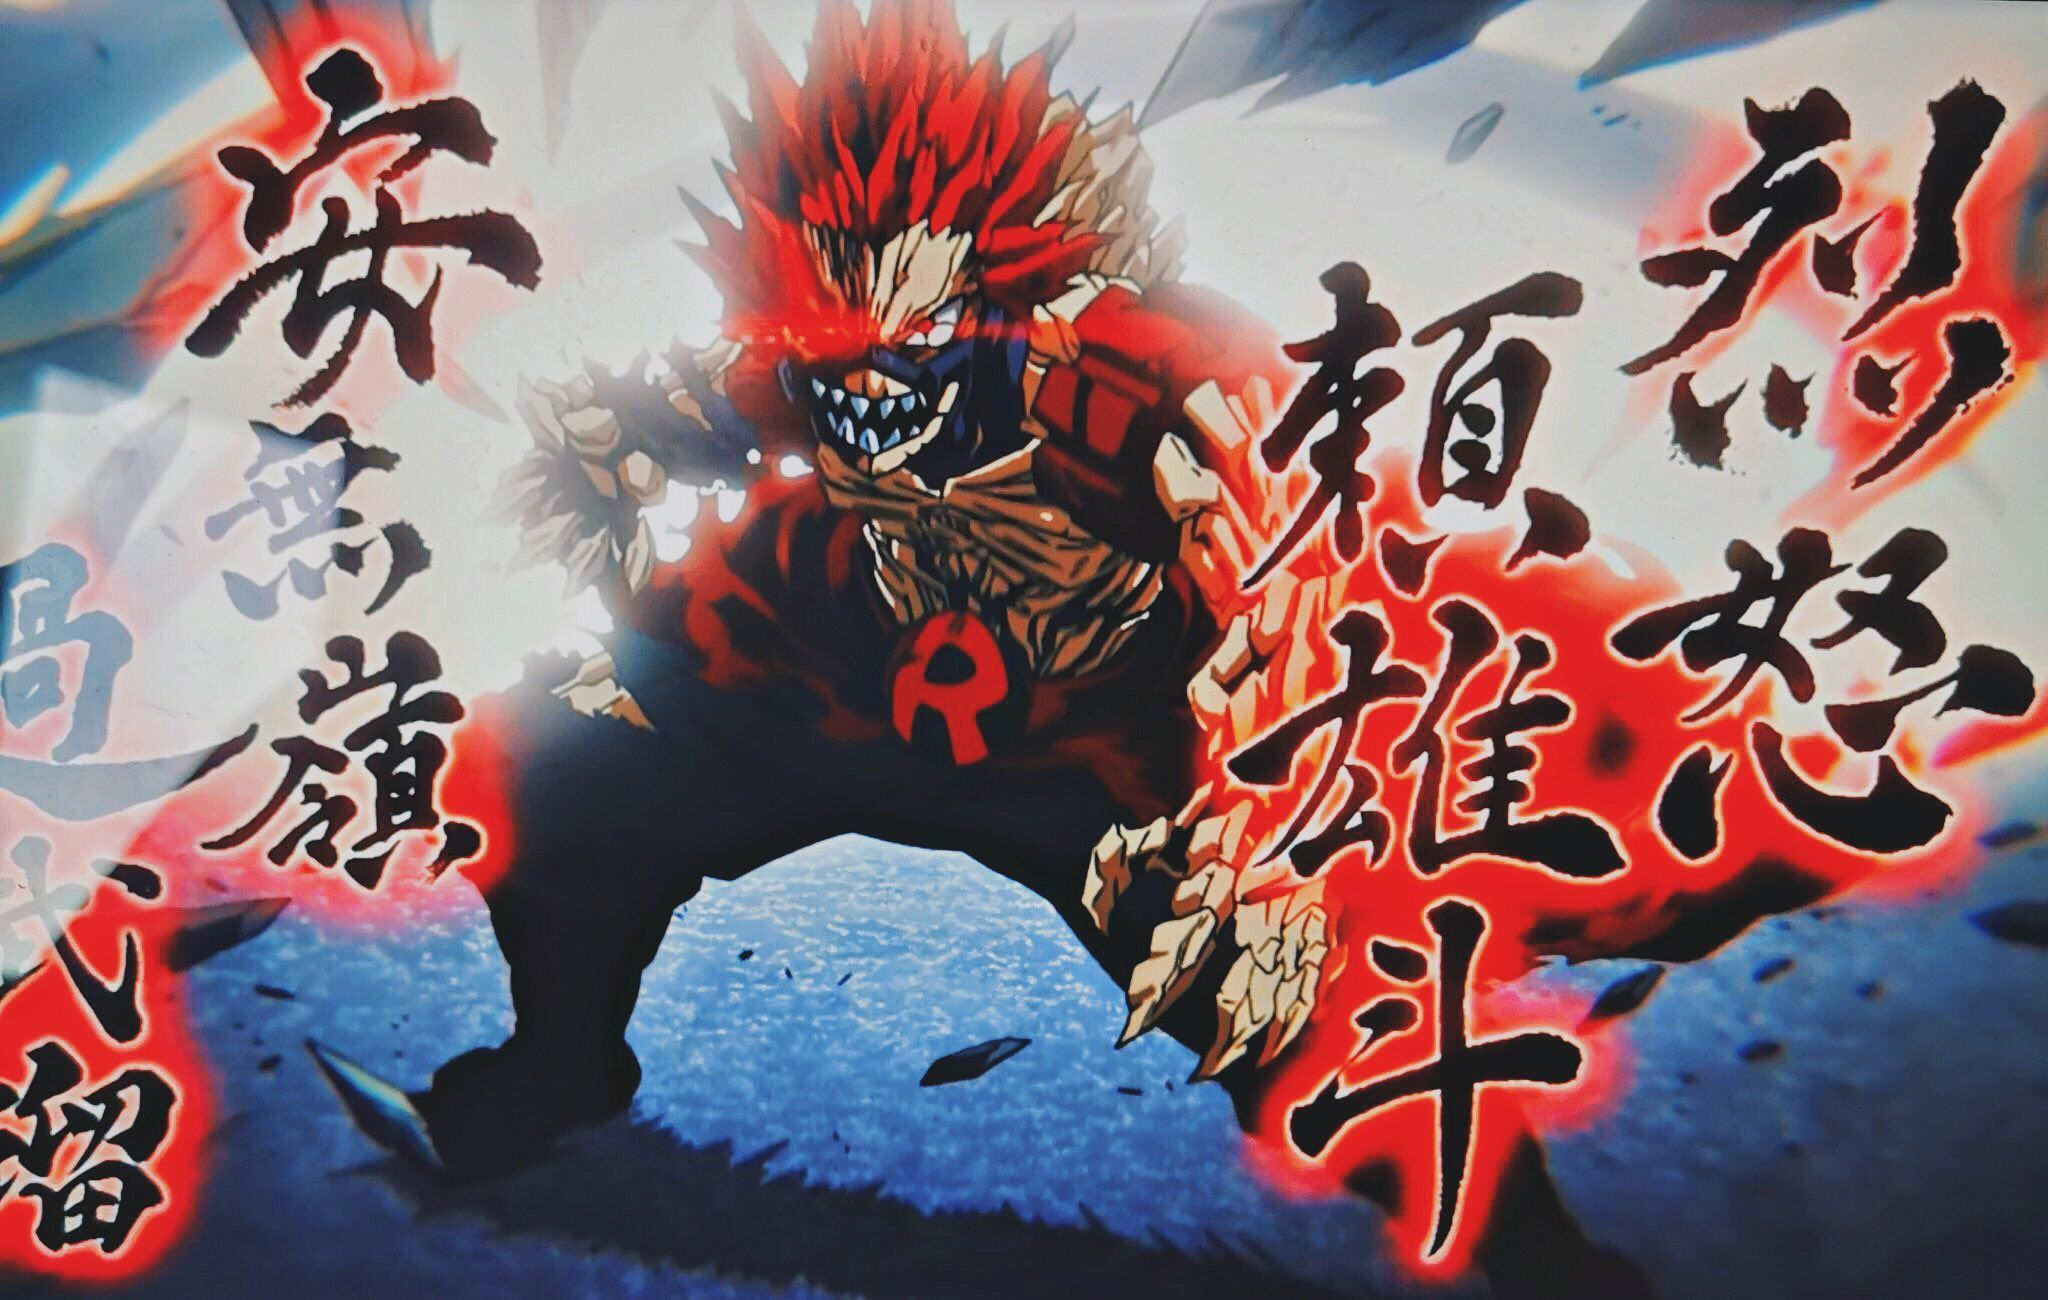 My hero academia wallpapers, anime wallpapers,. Red Riot Unbreakable Wallpapers - Top Free Red Riot ...